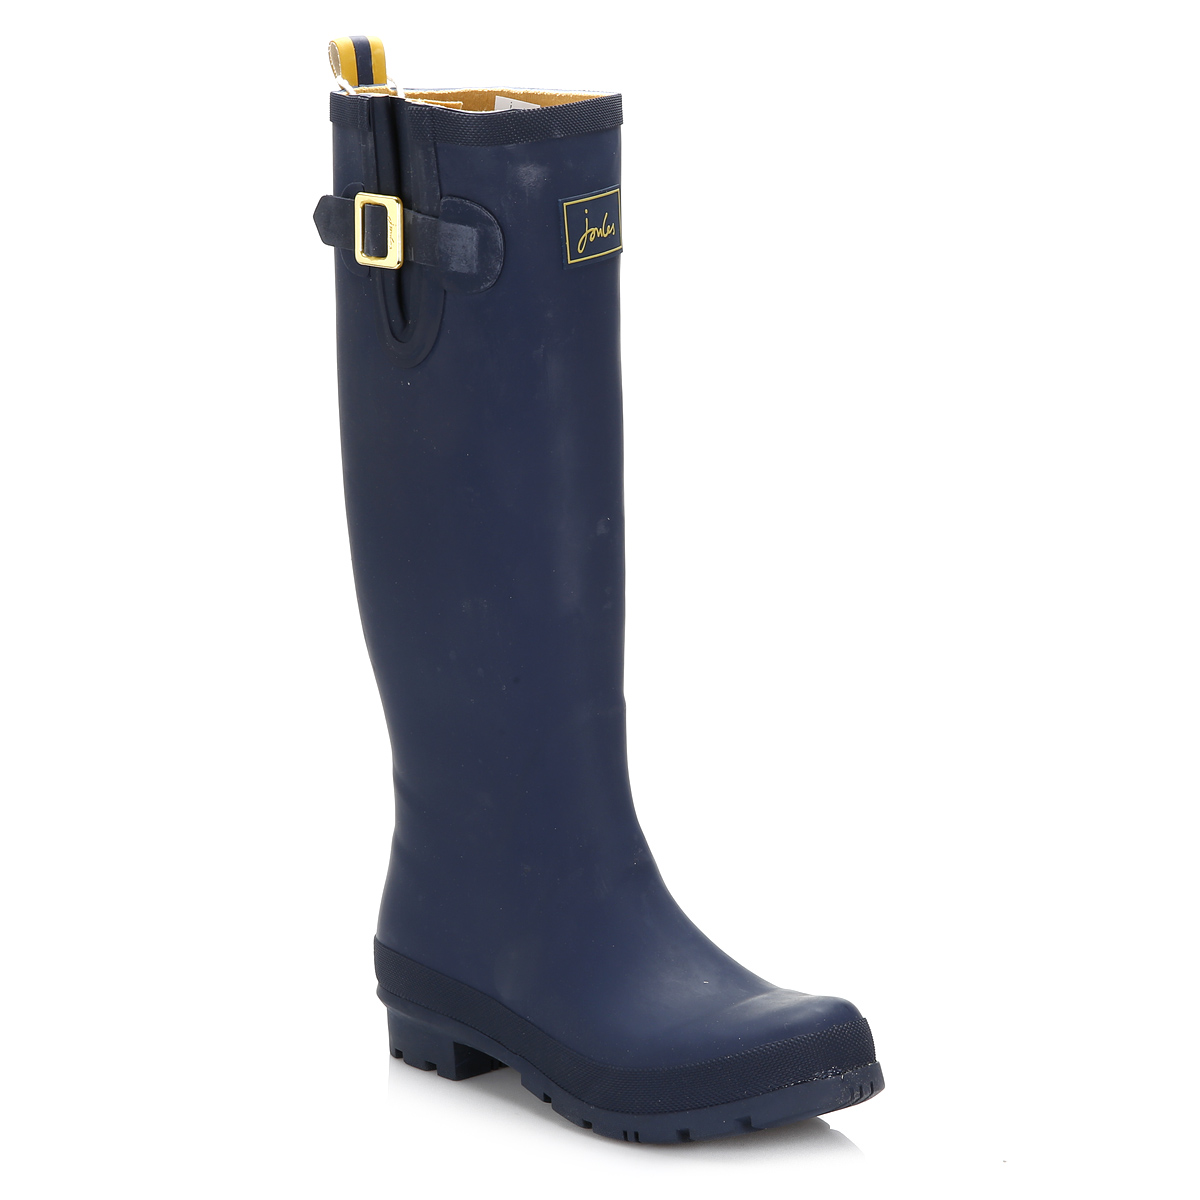 Joules Damenschuhe Wellies French Navy Casual Blau Wellington Stiefel PullOn Casual Navy Schuhes 2c7dab